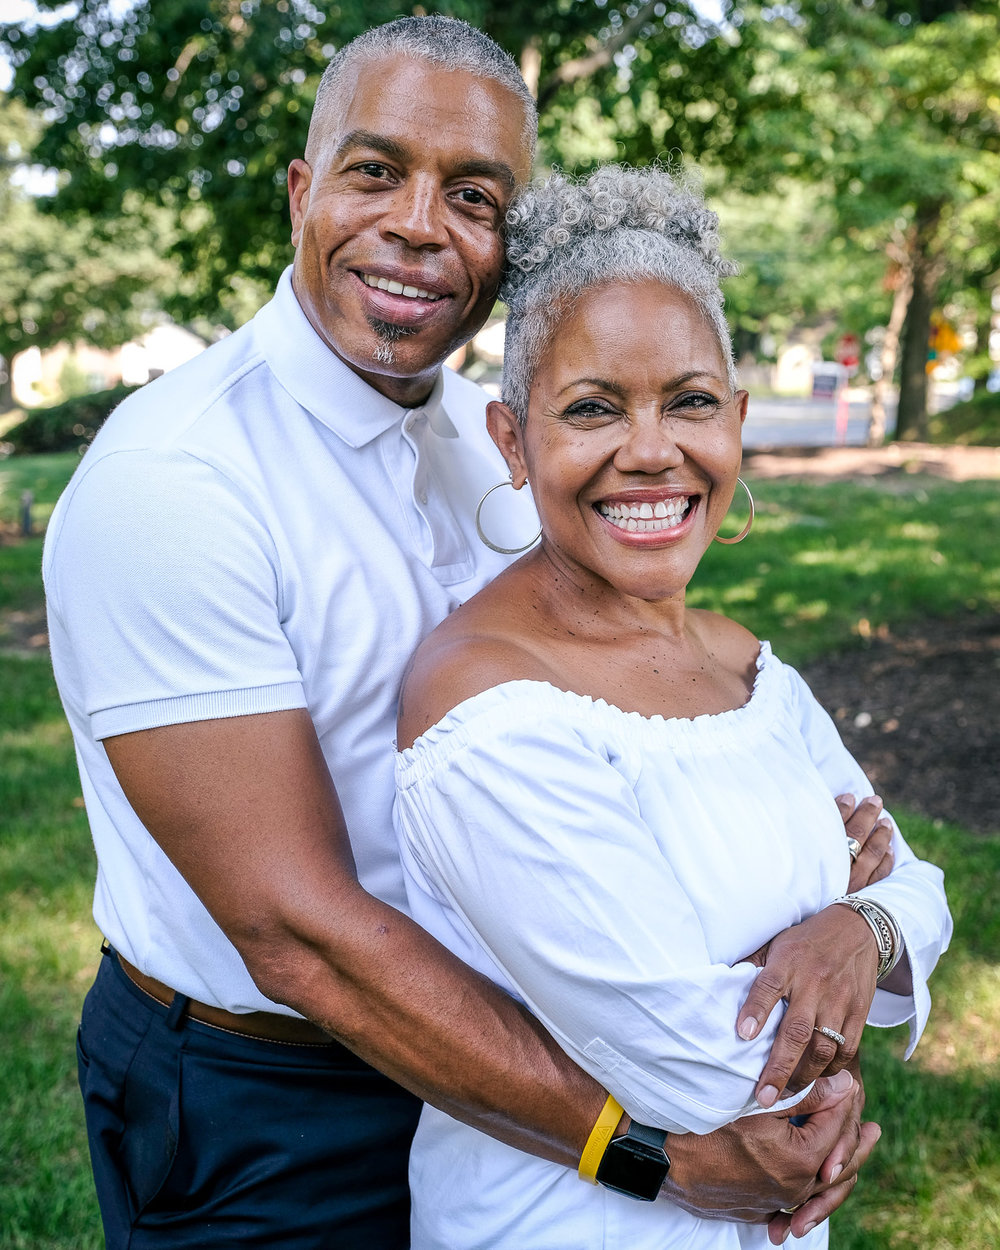 Lenzy_Ruffin_Photography_Family_Portrait_Photographer_Washington_DC_8-22-17-347.jpg